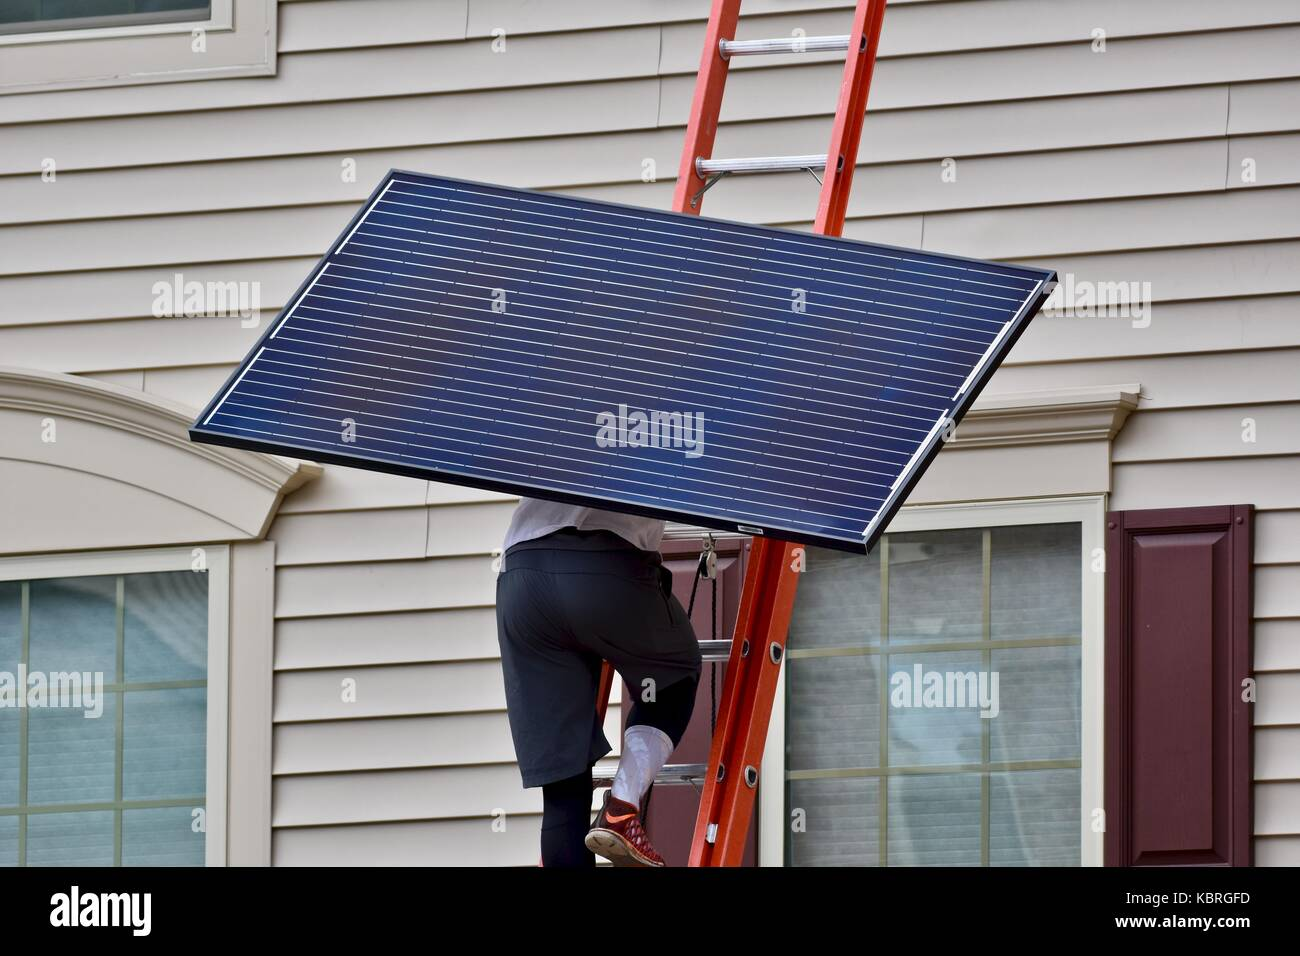 Solar Panel Up Ladder Stock Photos Amp Solar Panel Up Ladder